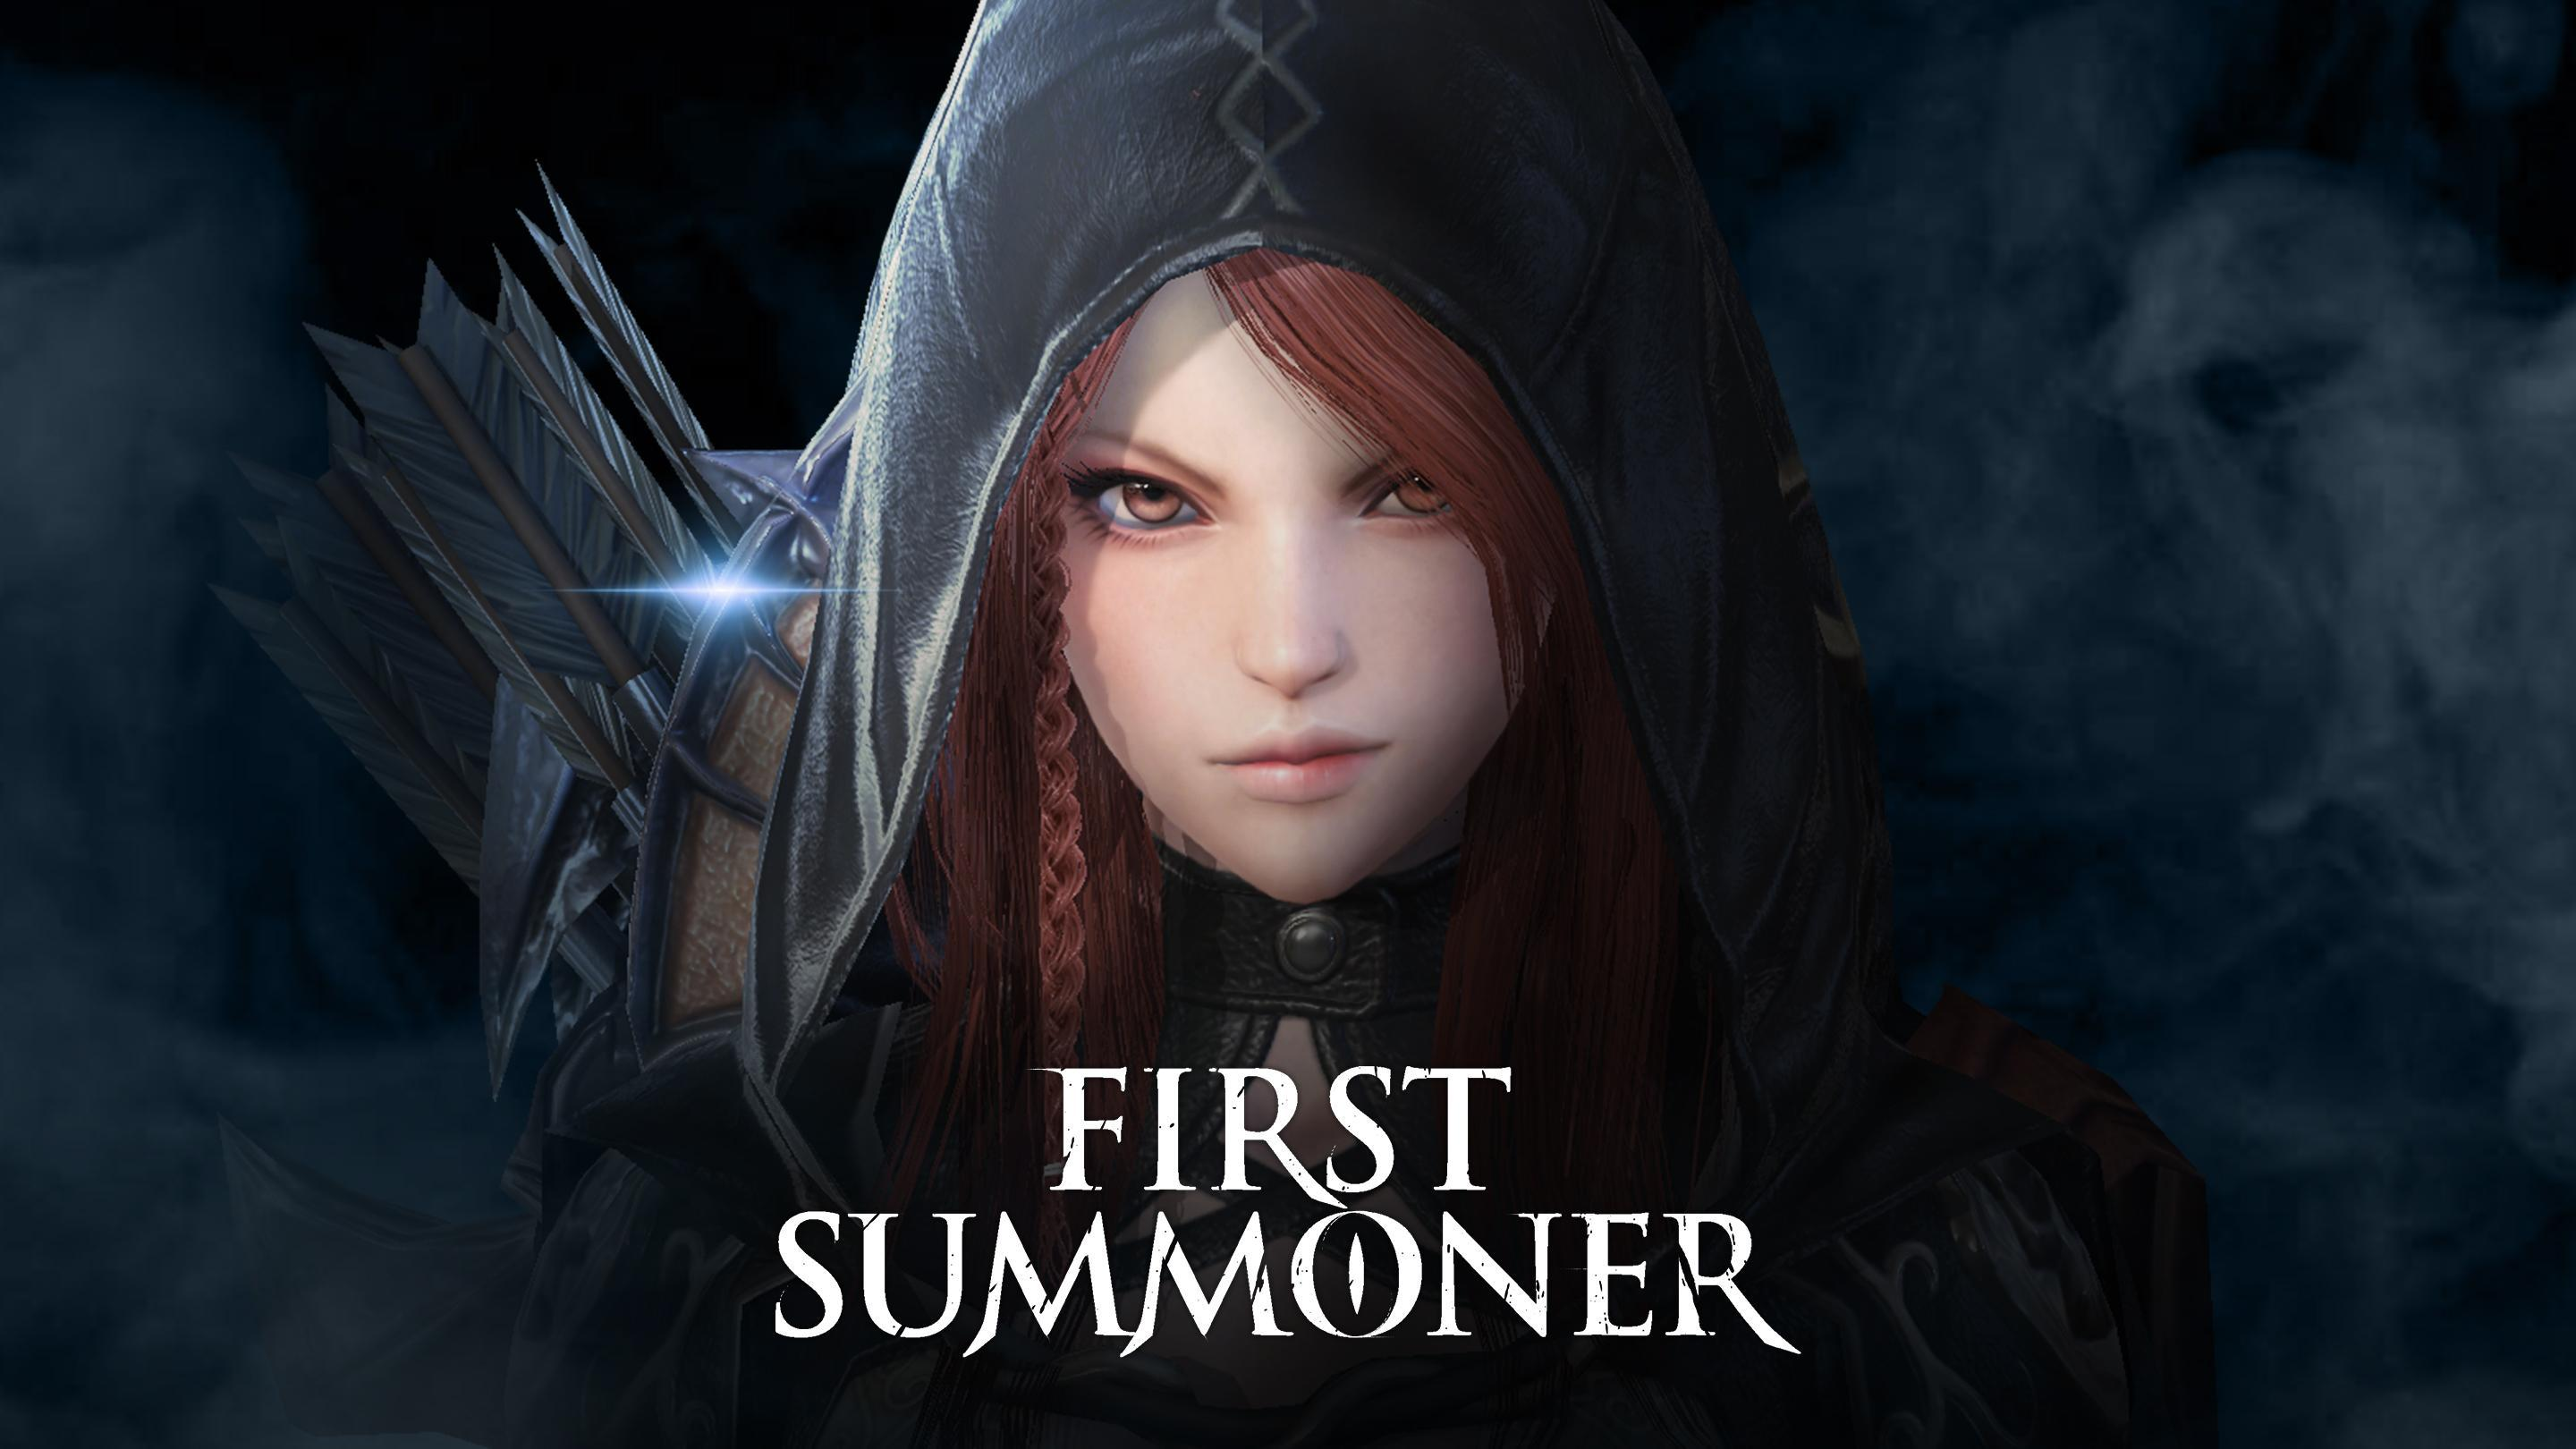 First Summoner・Tesztlabor